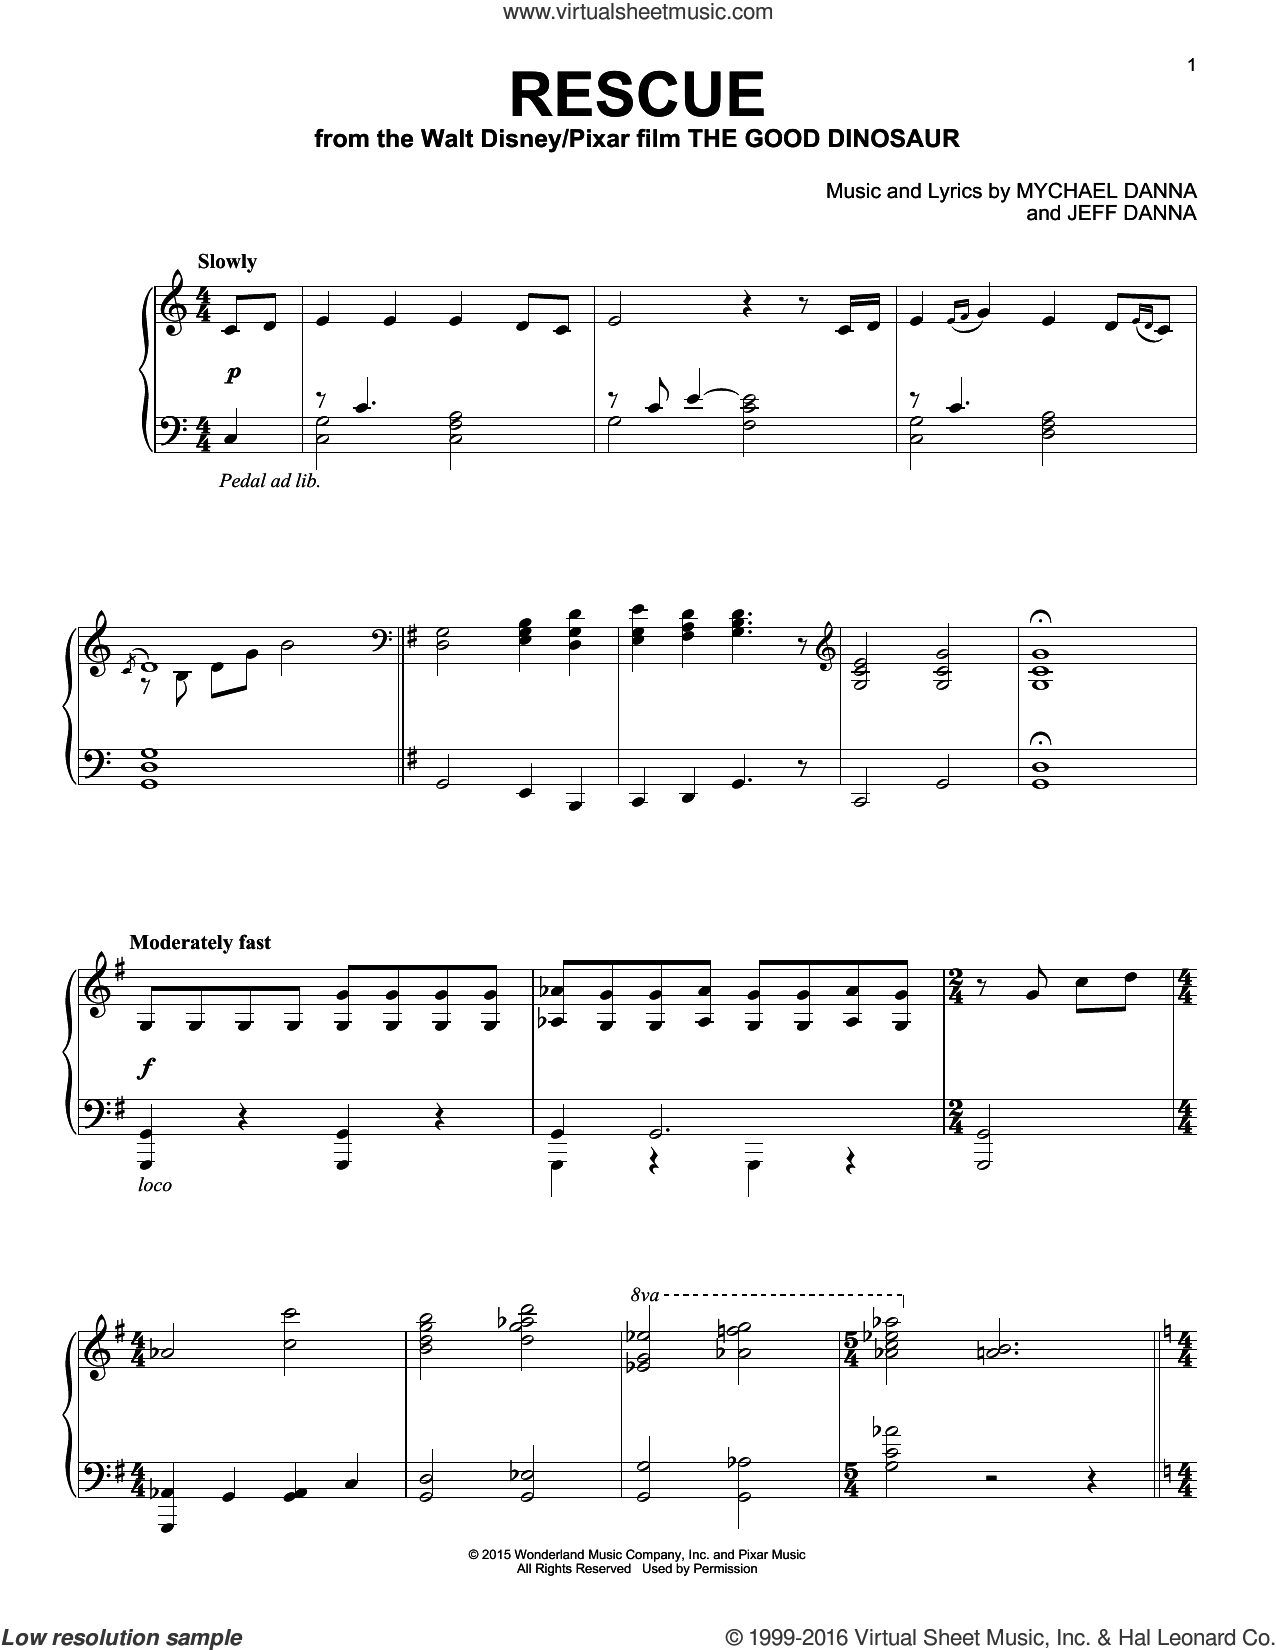 Rescue sheet music for piano solo by Mychael & Jeff Danna